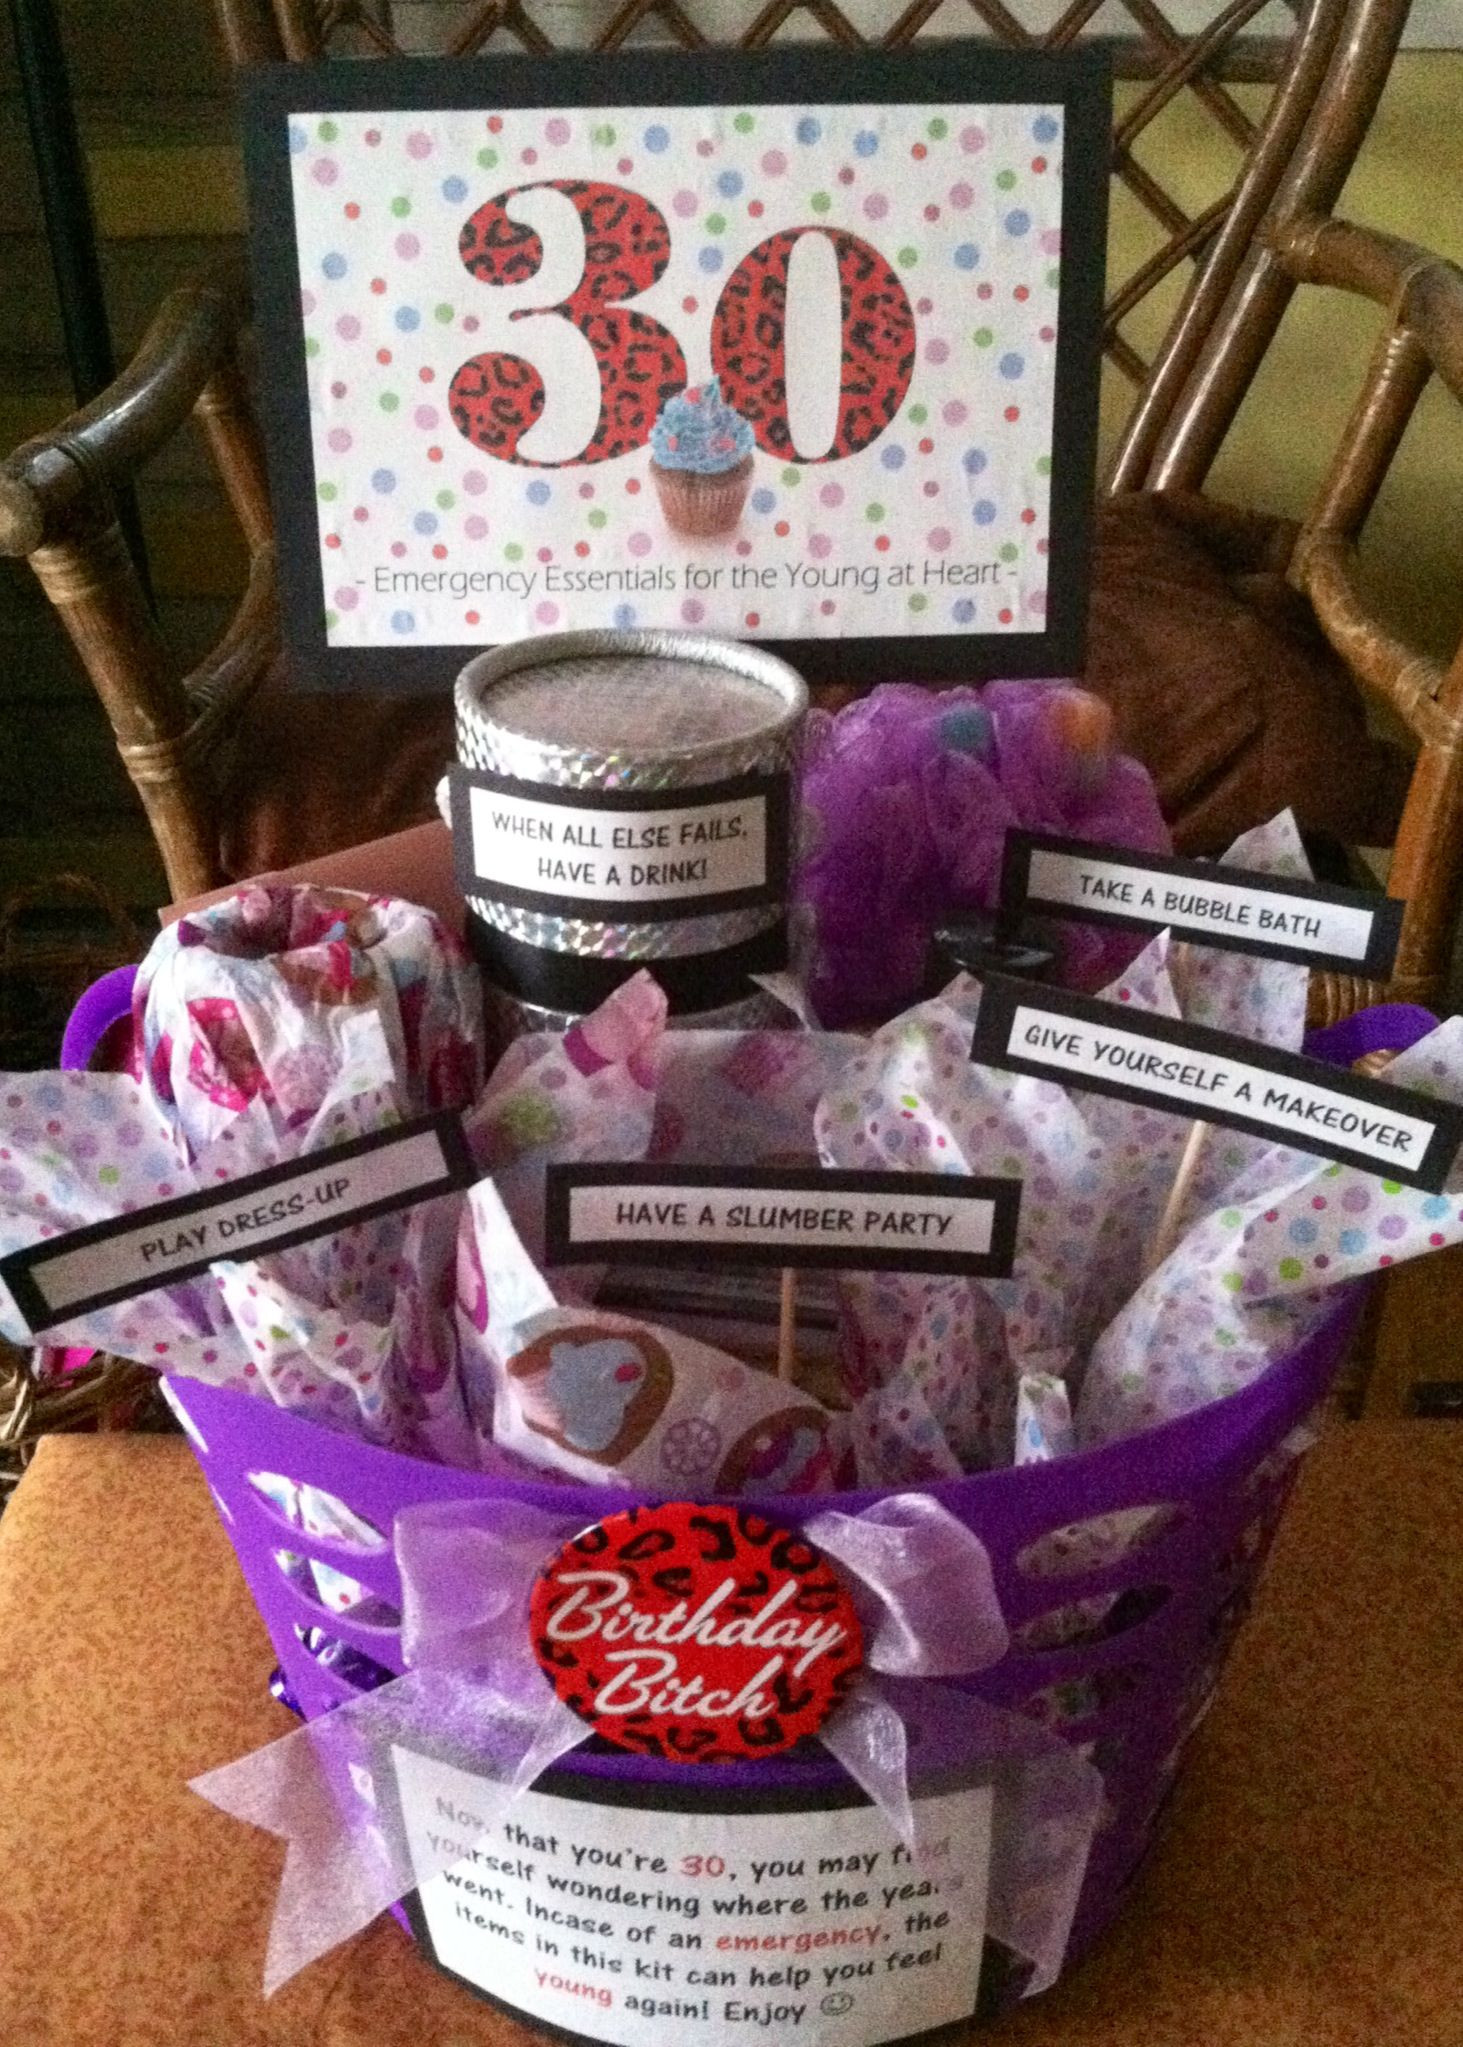 30 Gifts For 30Th Birthday For Her  30th Birthday Gift Basket 5 ts in 1 Emergency